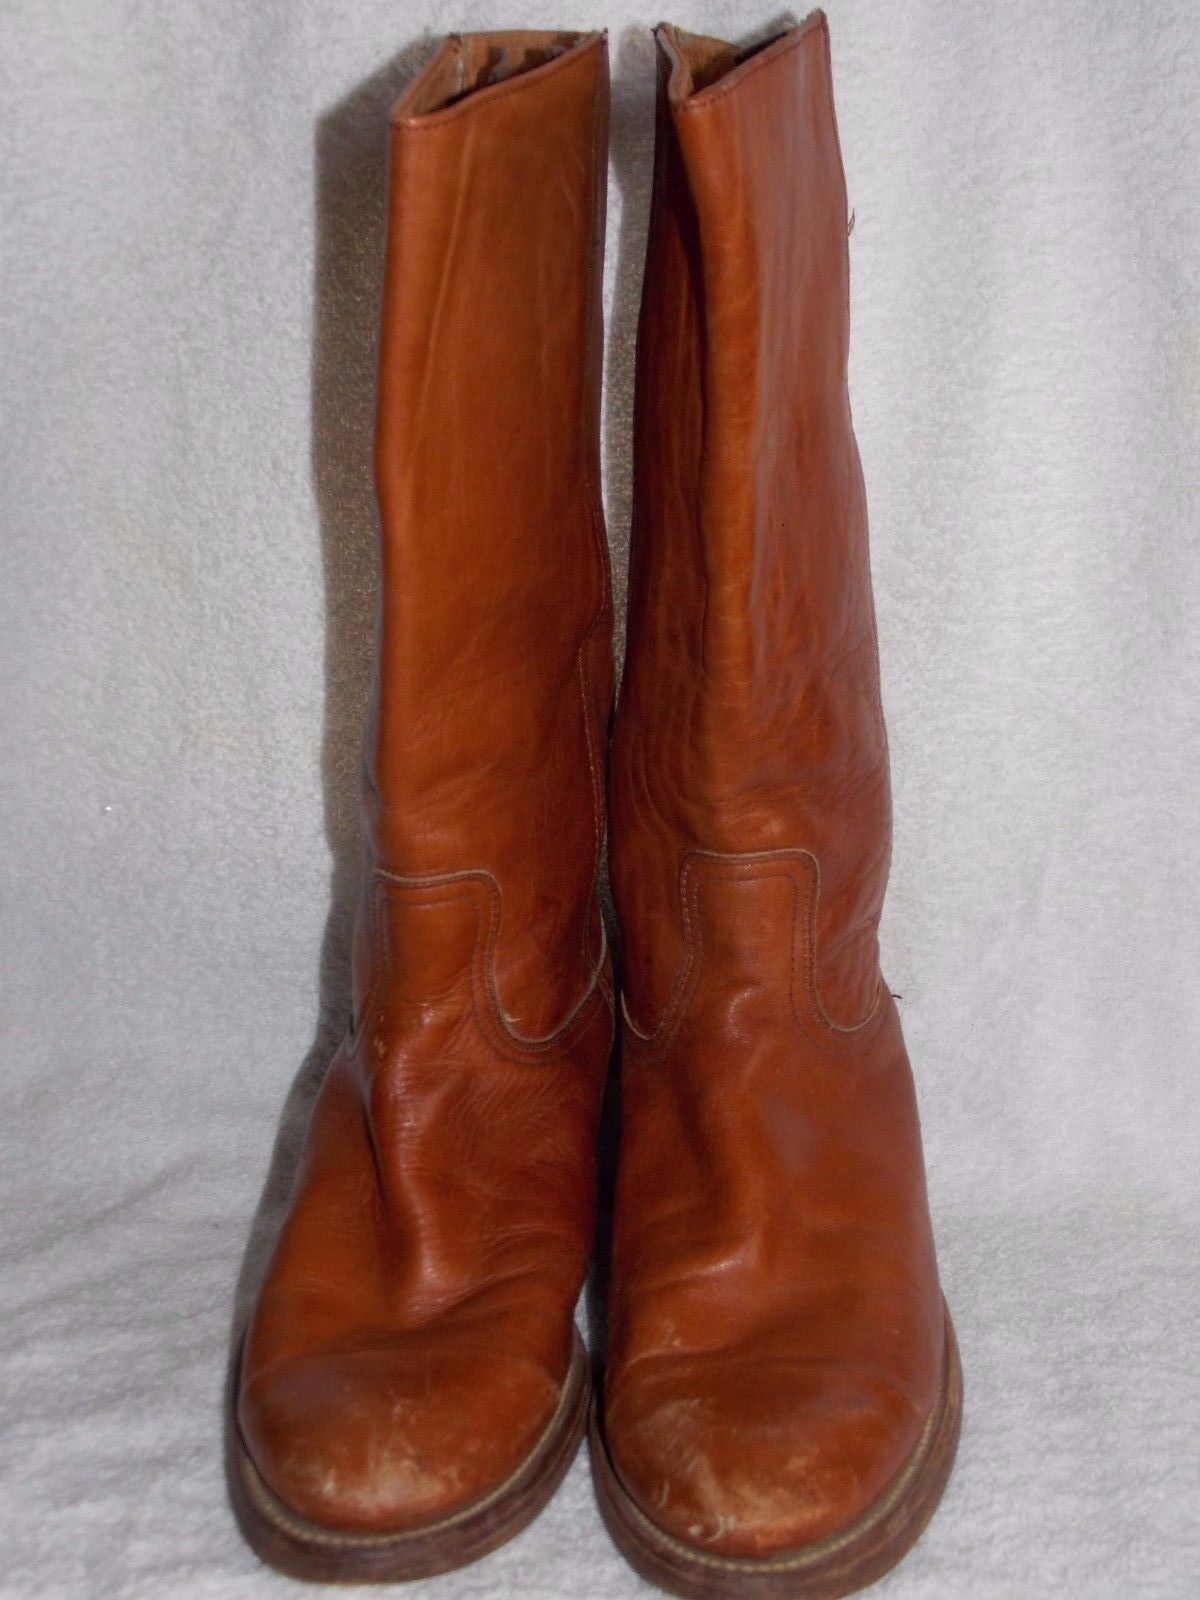 Frye 9K21032 CAMPUS Leather Brown Pull On Boots 8.5D Used